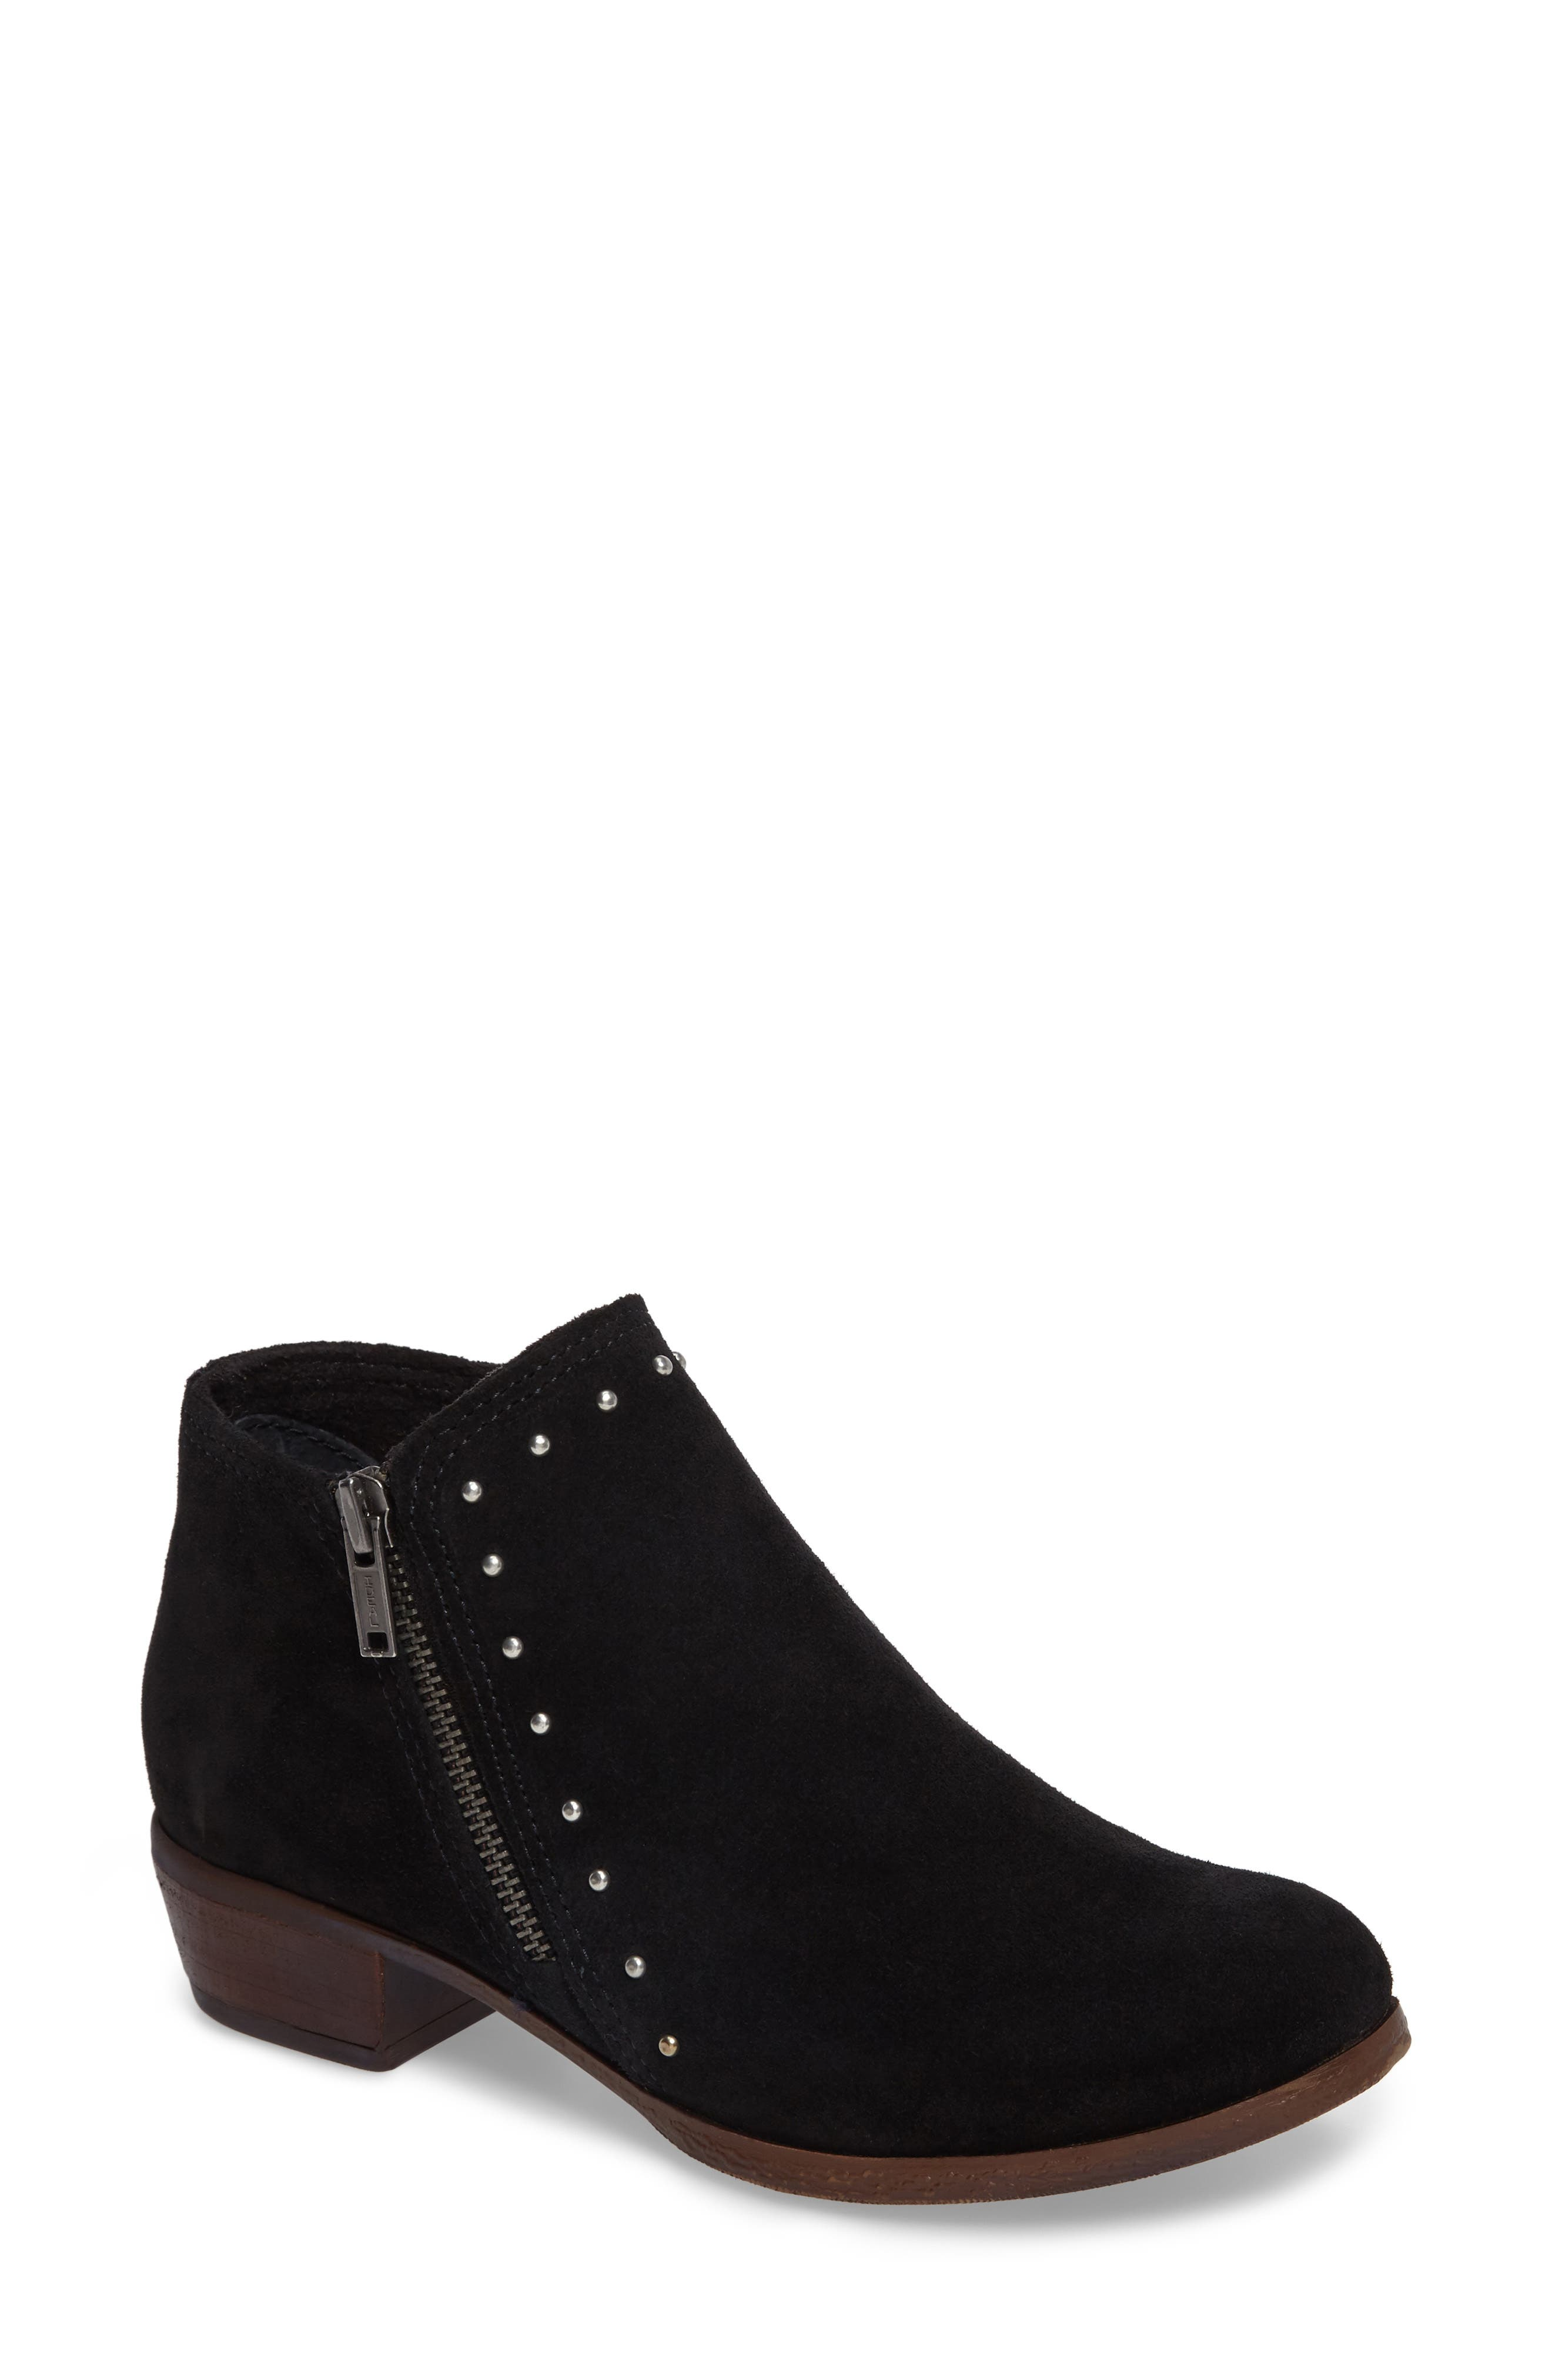 MINNETONKA, Brie Studded Bootie, Main thumbnail 1, color, BLACK